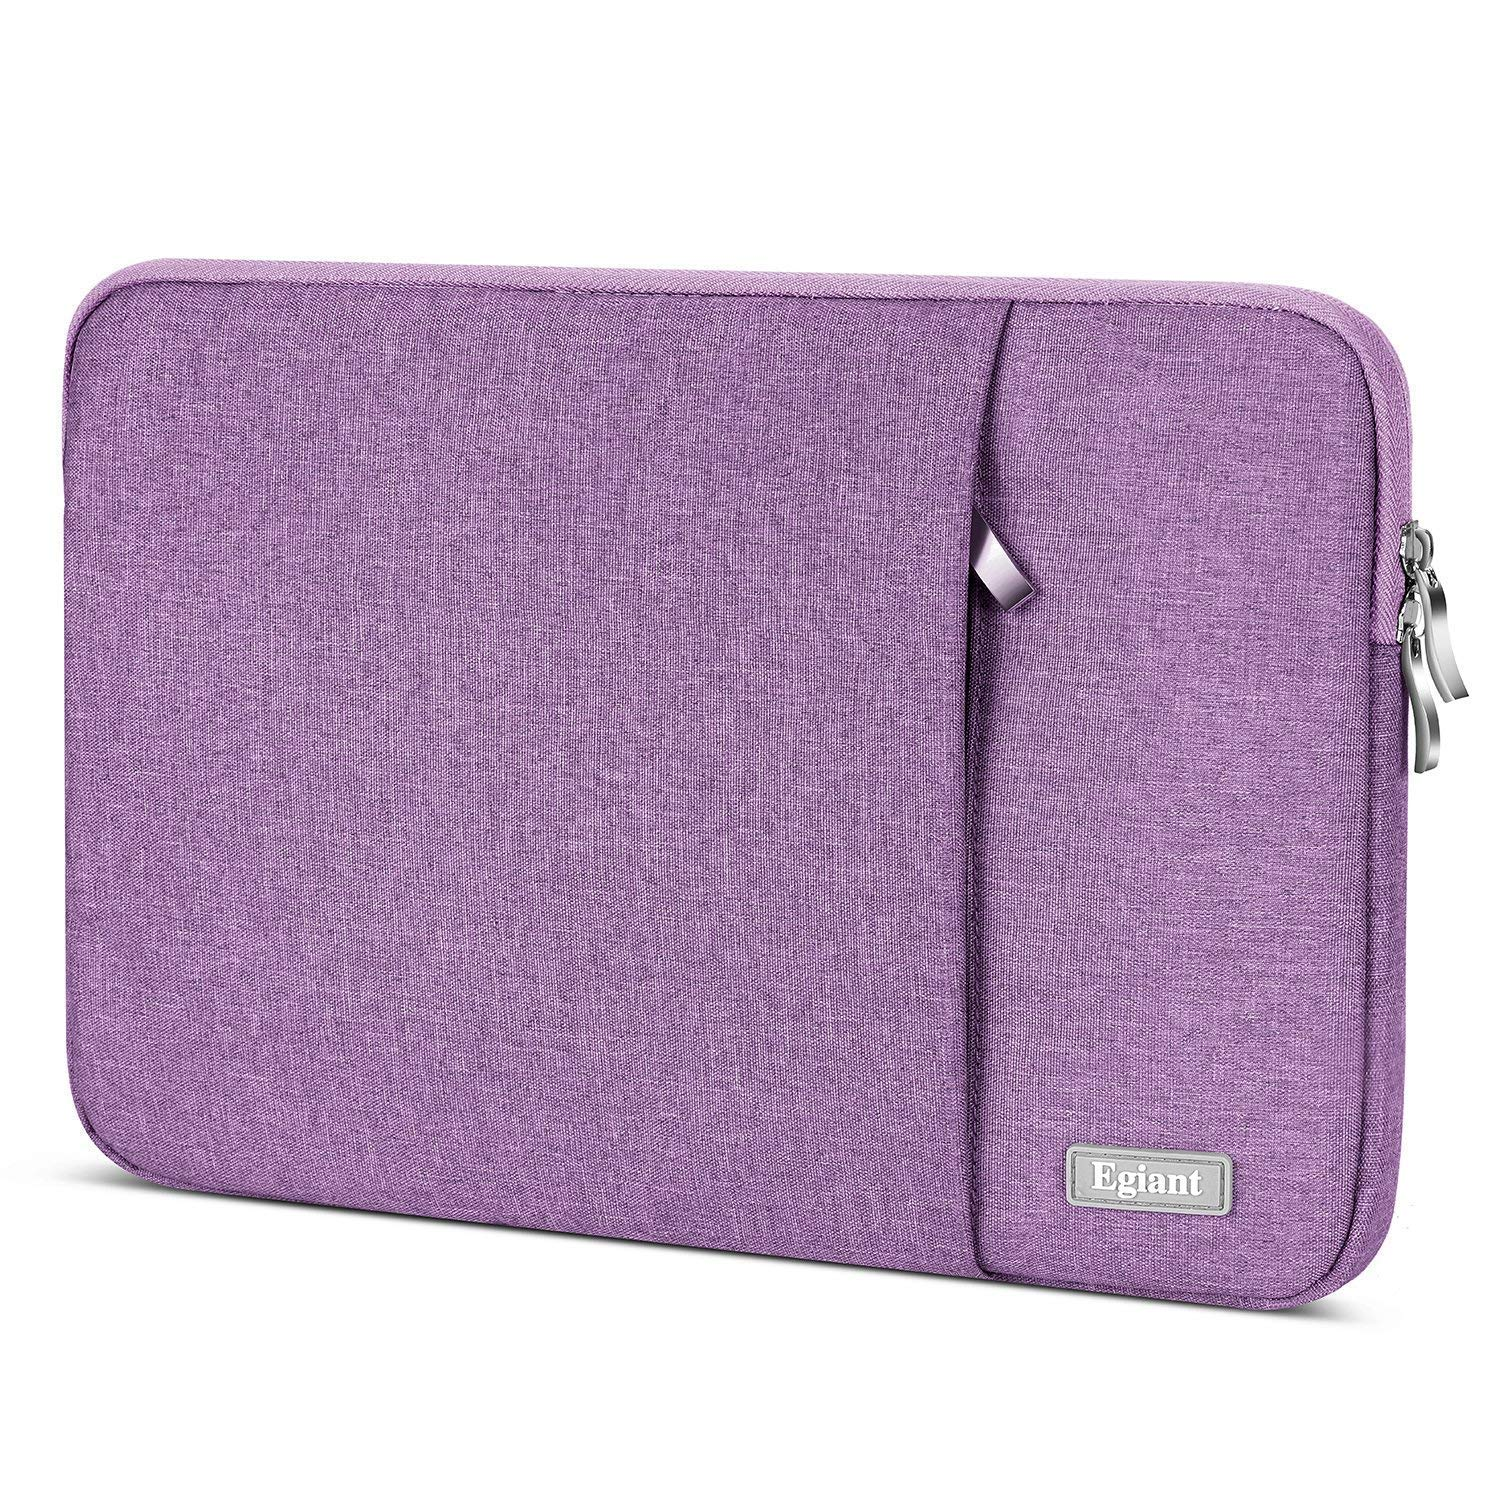 "Laptop Sleeve,Egiant Water Resistant Protective Case Bag Compatible 11.6 Inch Stream 11|Mac Air 11|Mac 12 Retina|Tablet|Surface Pro 3 4 5 6|Chromebook 11|11.6"" Notebook Computer Cover-Purple"